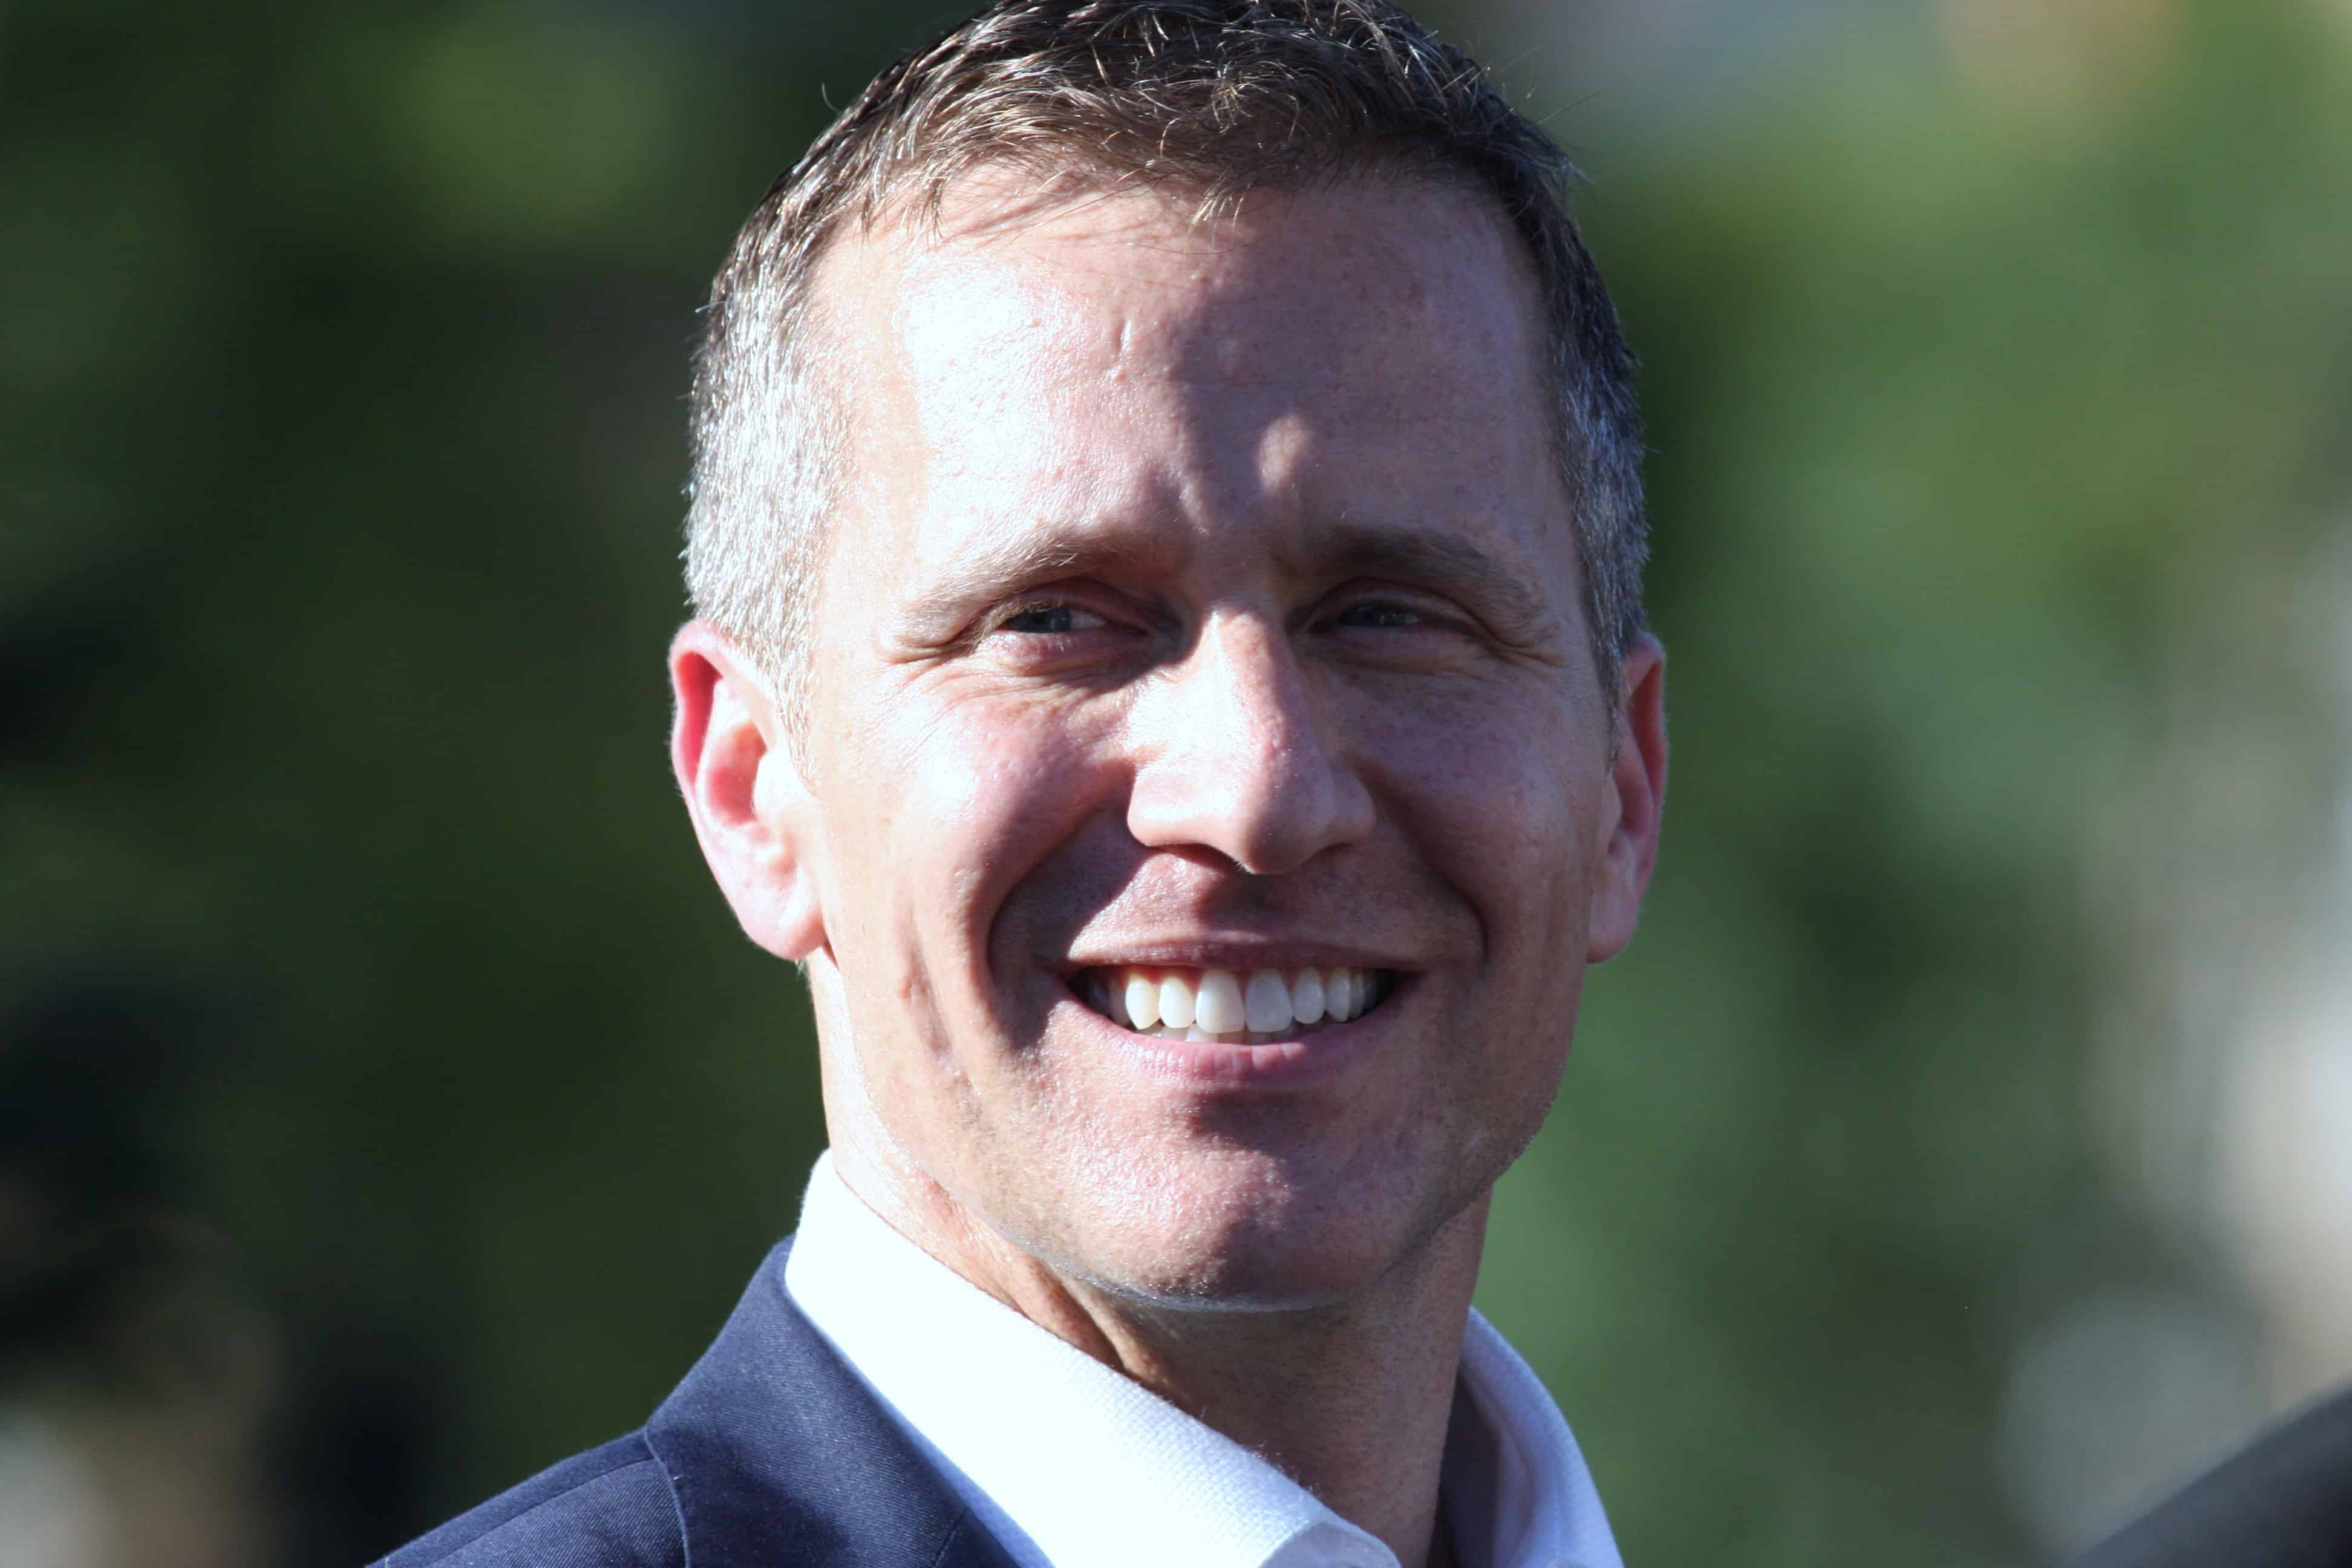 Missouri Governor Greitens Announces New Job Training Opportunities for Students